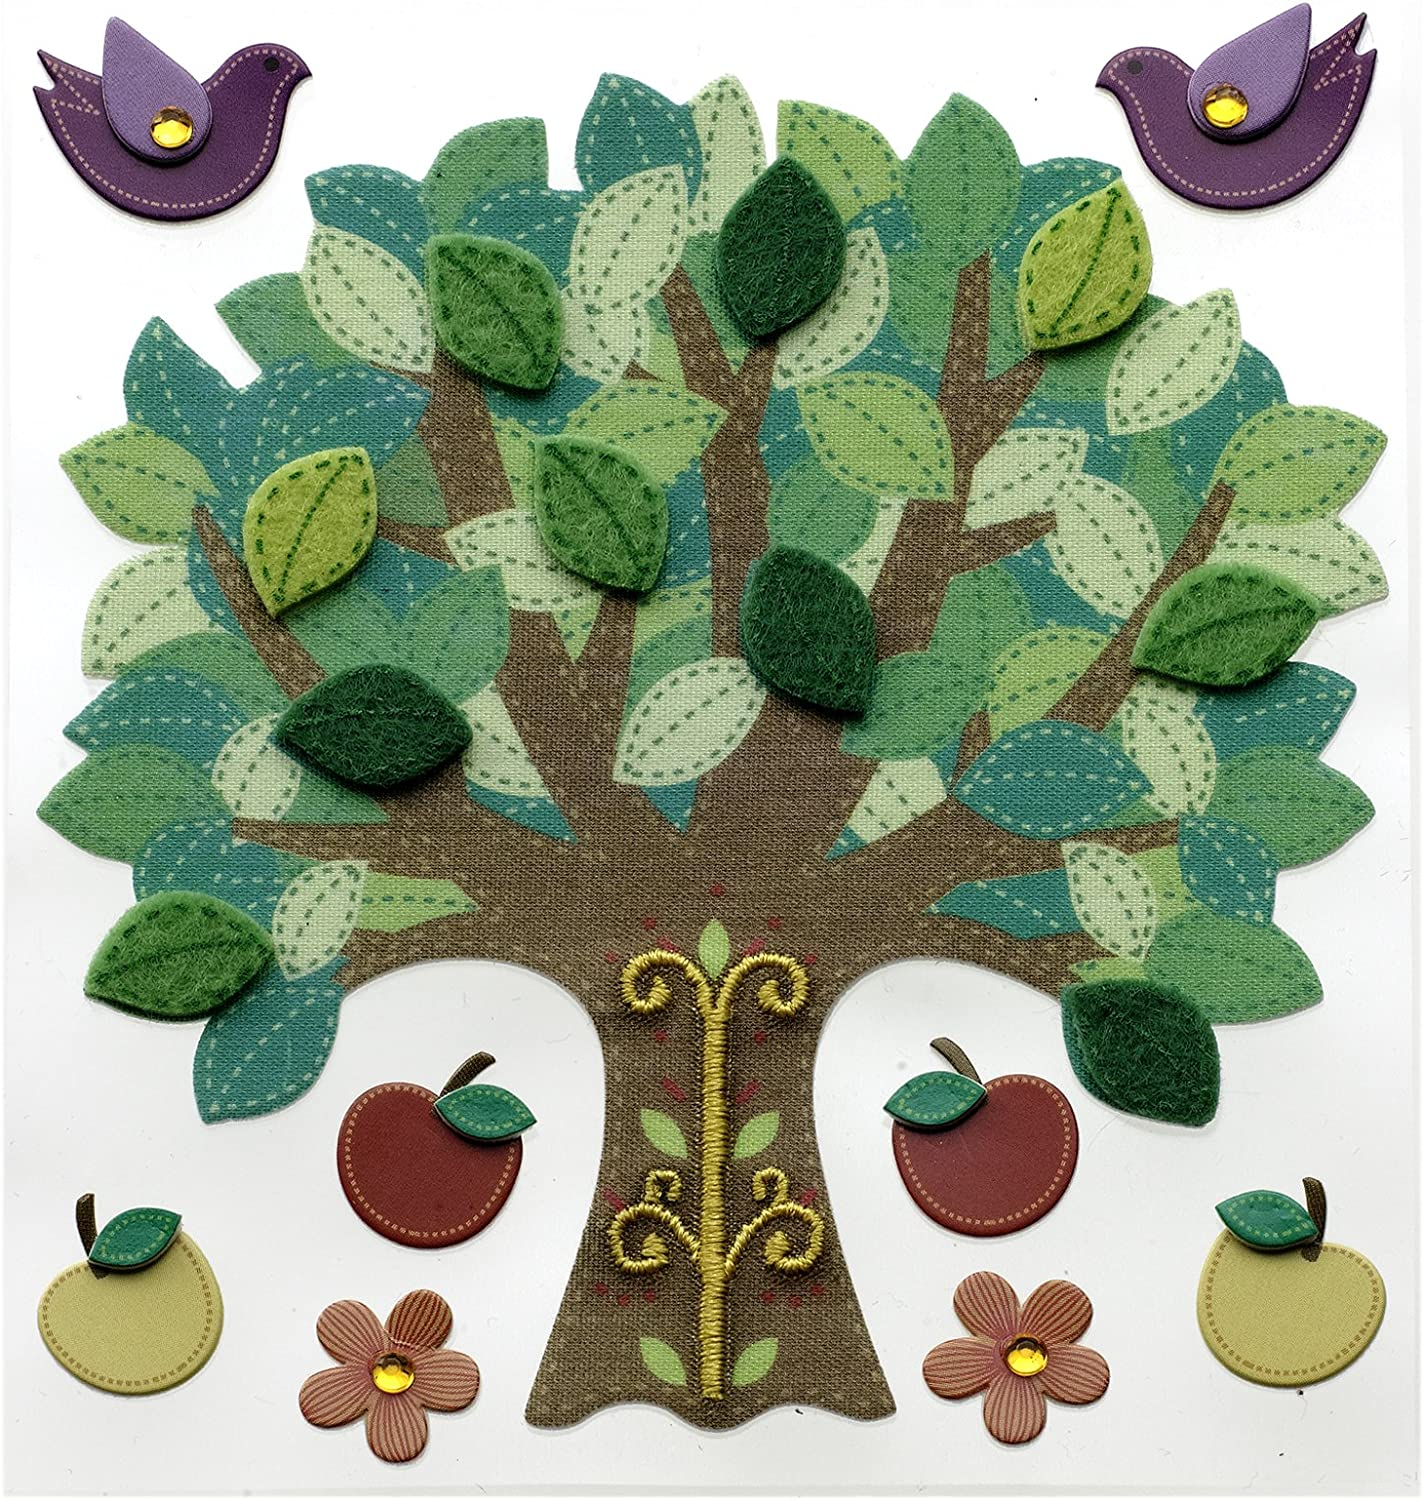 Jolee's Boutique Dimensional Stickers, Colorful Stitched Tree